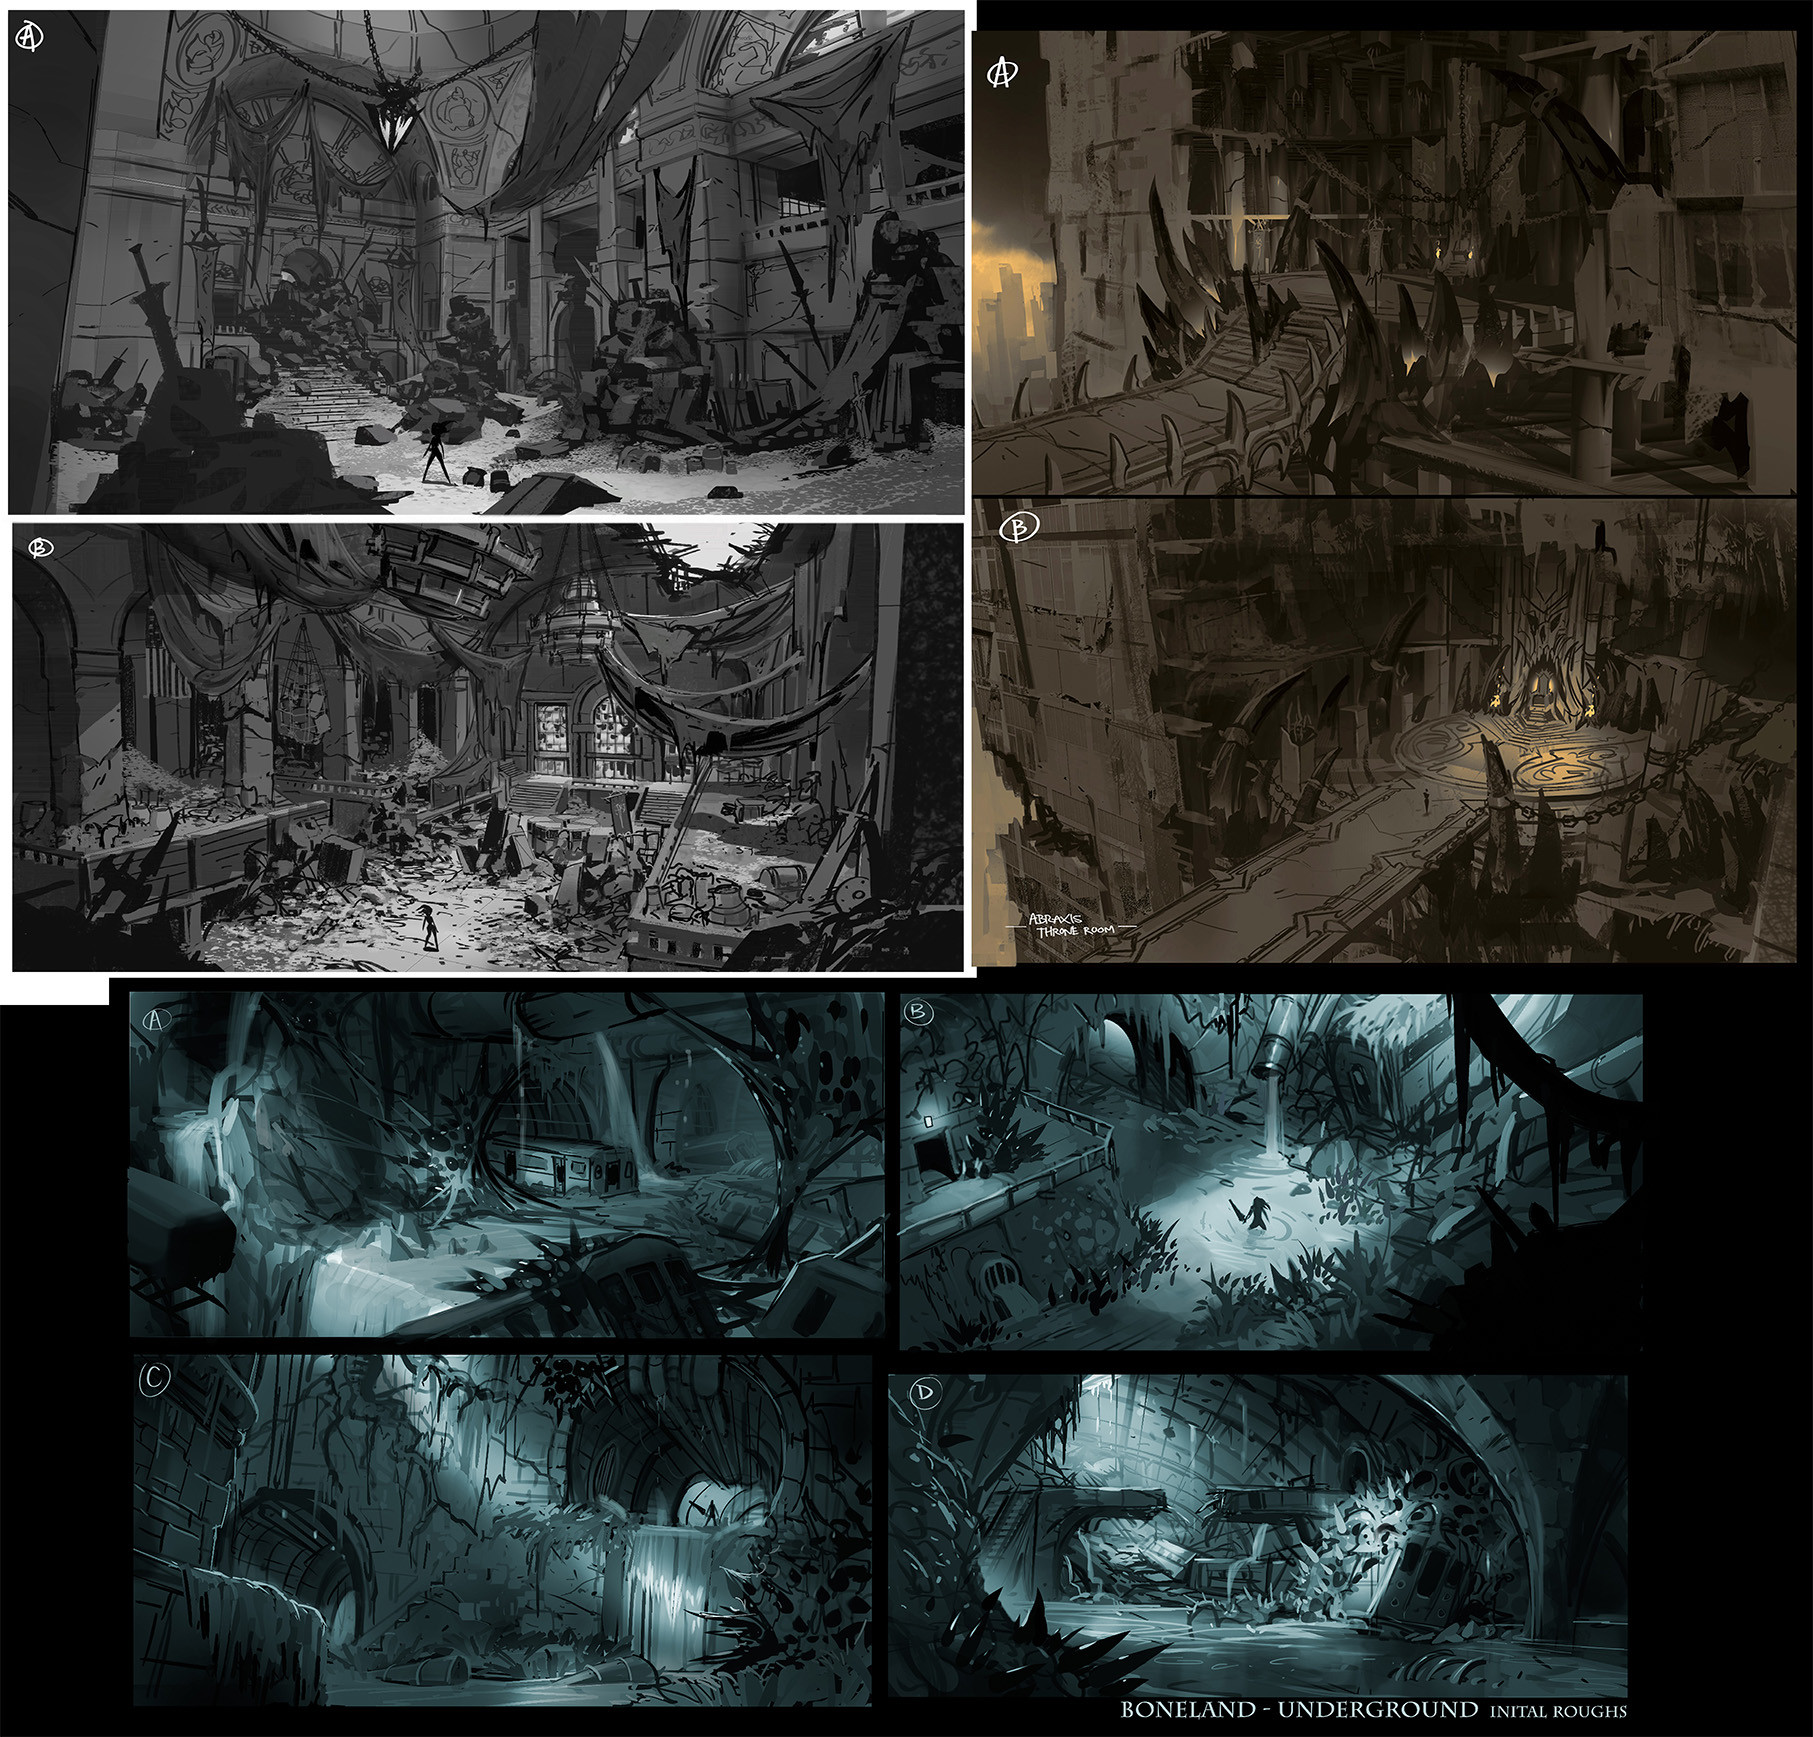 Daryl mandryk location roughs